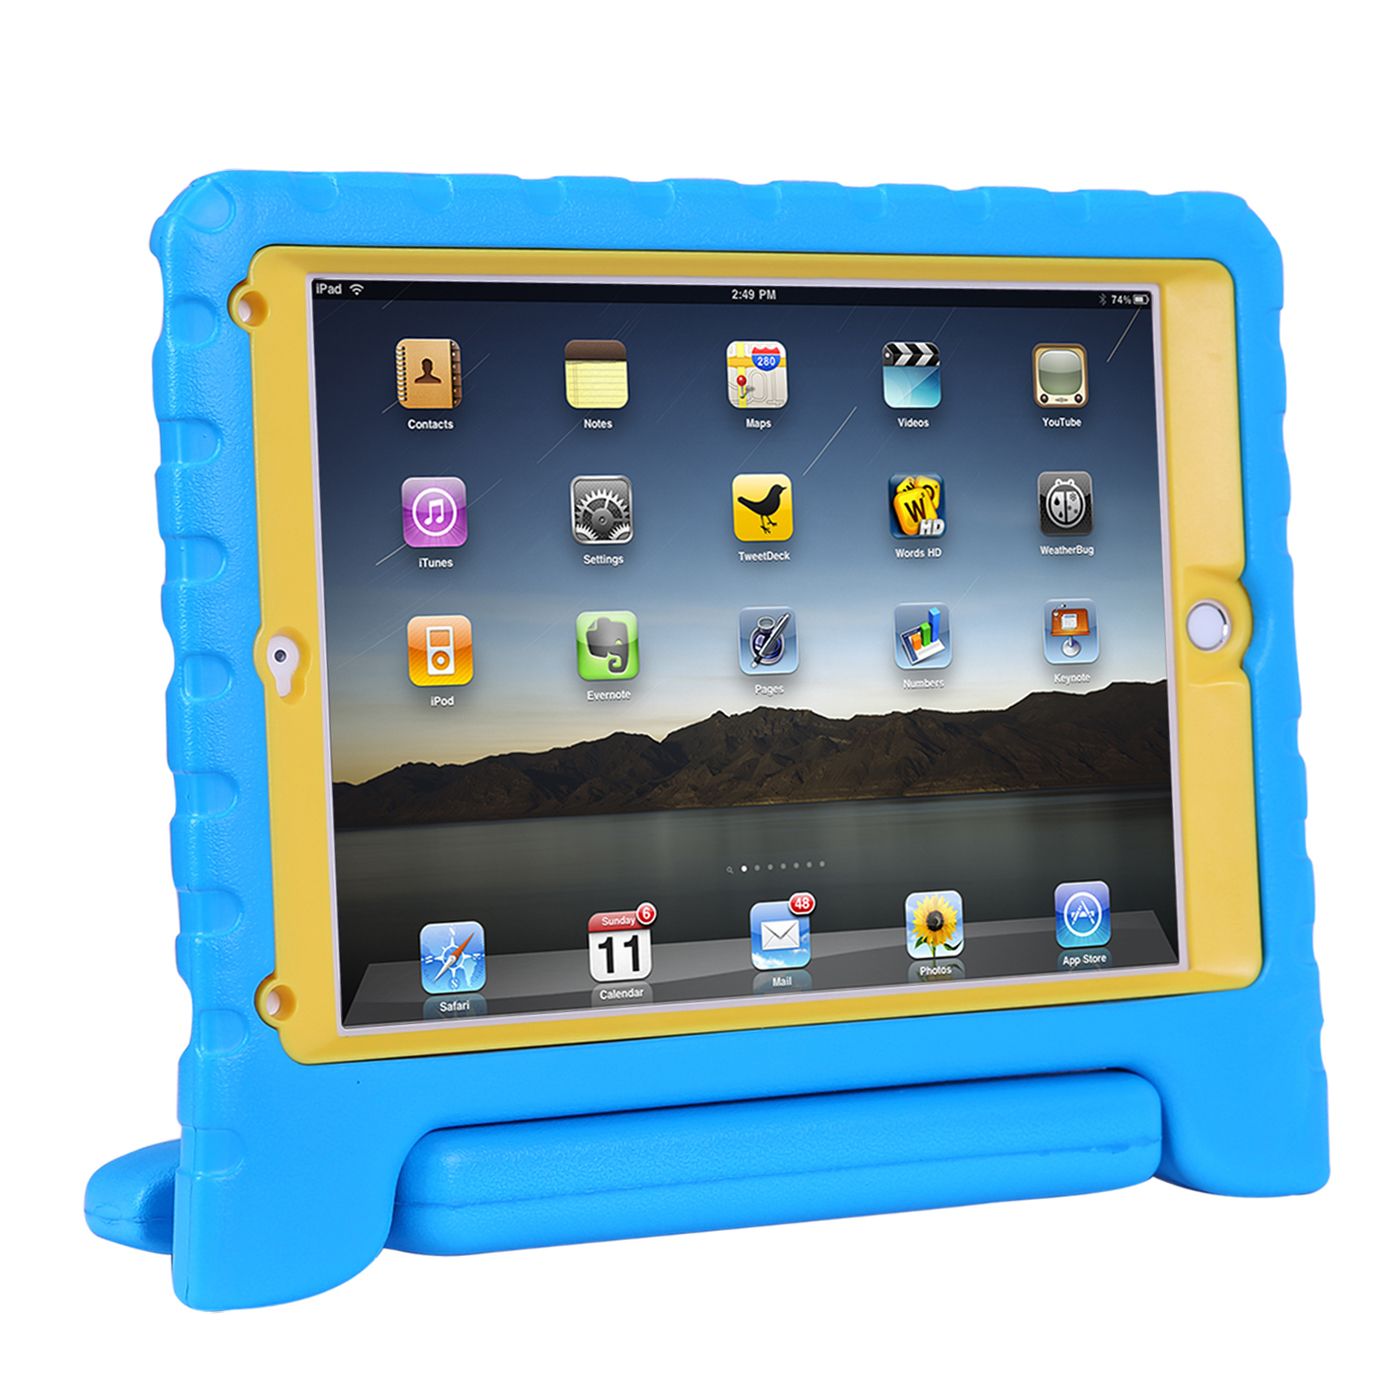 HDE iPad Air 2 Bumper Case for Kids Shockproof Hard Cover Handle Stand with Built in Screen Protector for Apple iPad Air 2 (Blue Yellow)